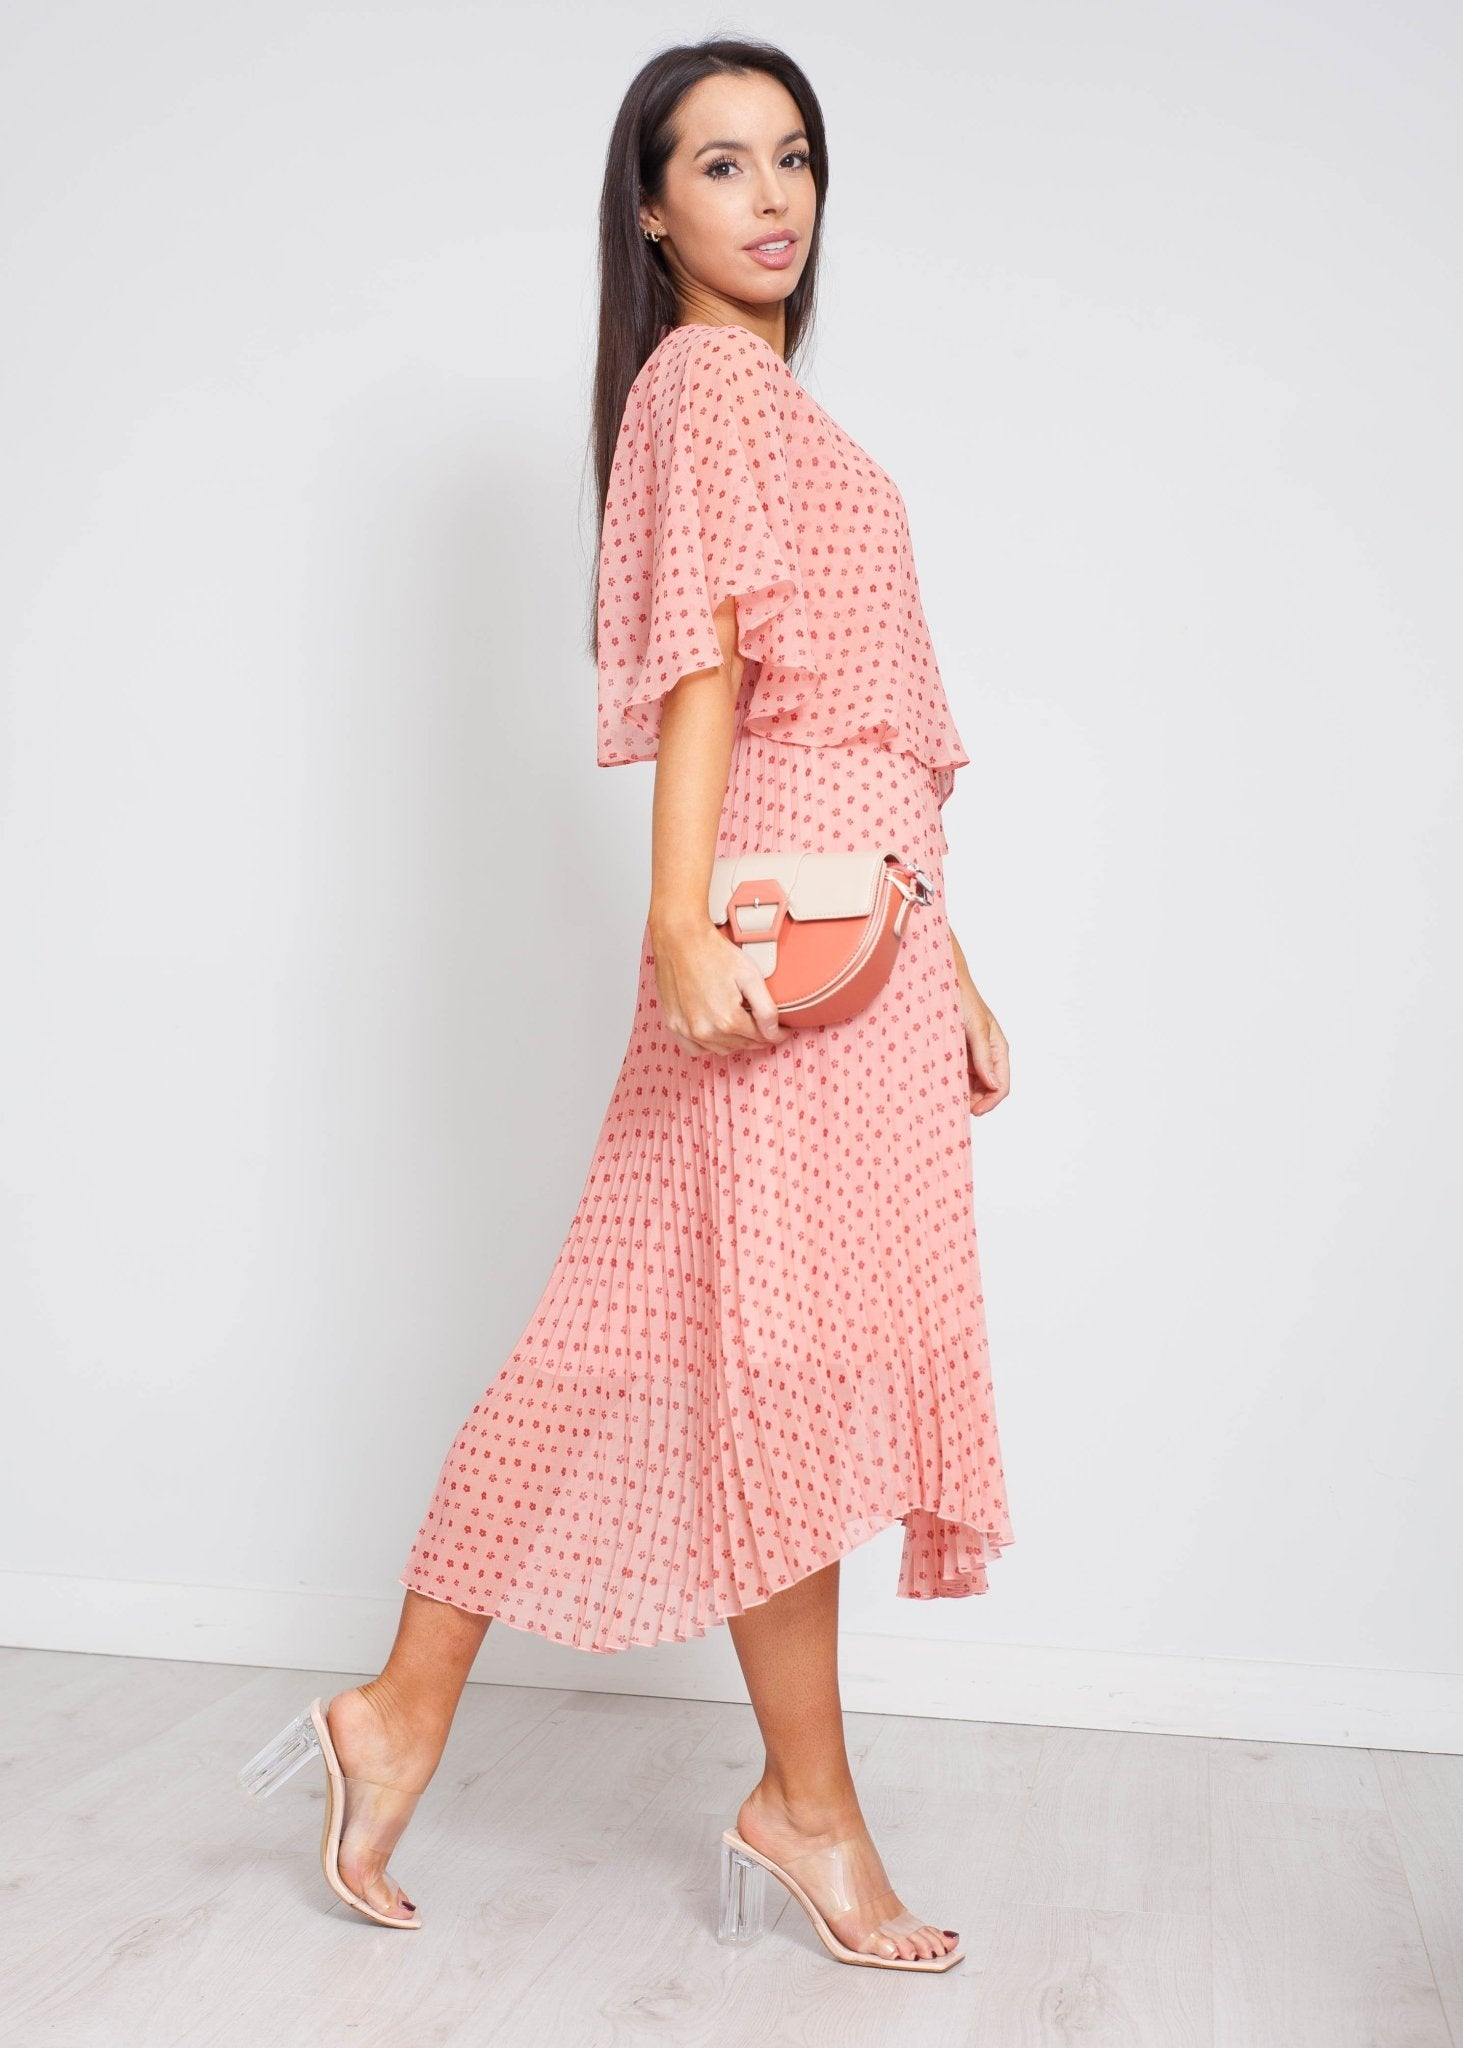 Jasmine Pleated Floral Dress In Pink - The Walk in Wardrobe